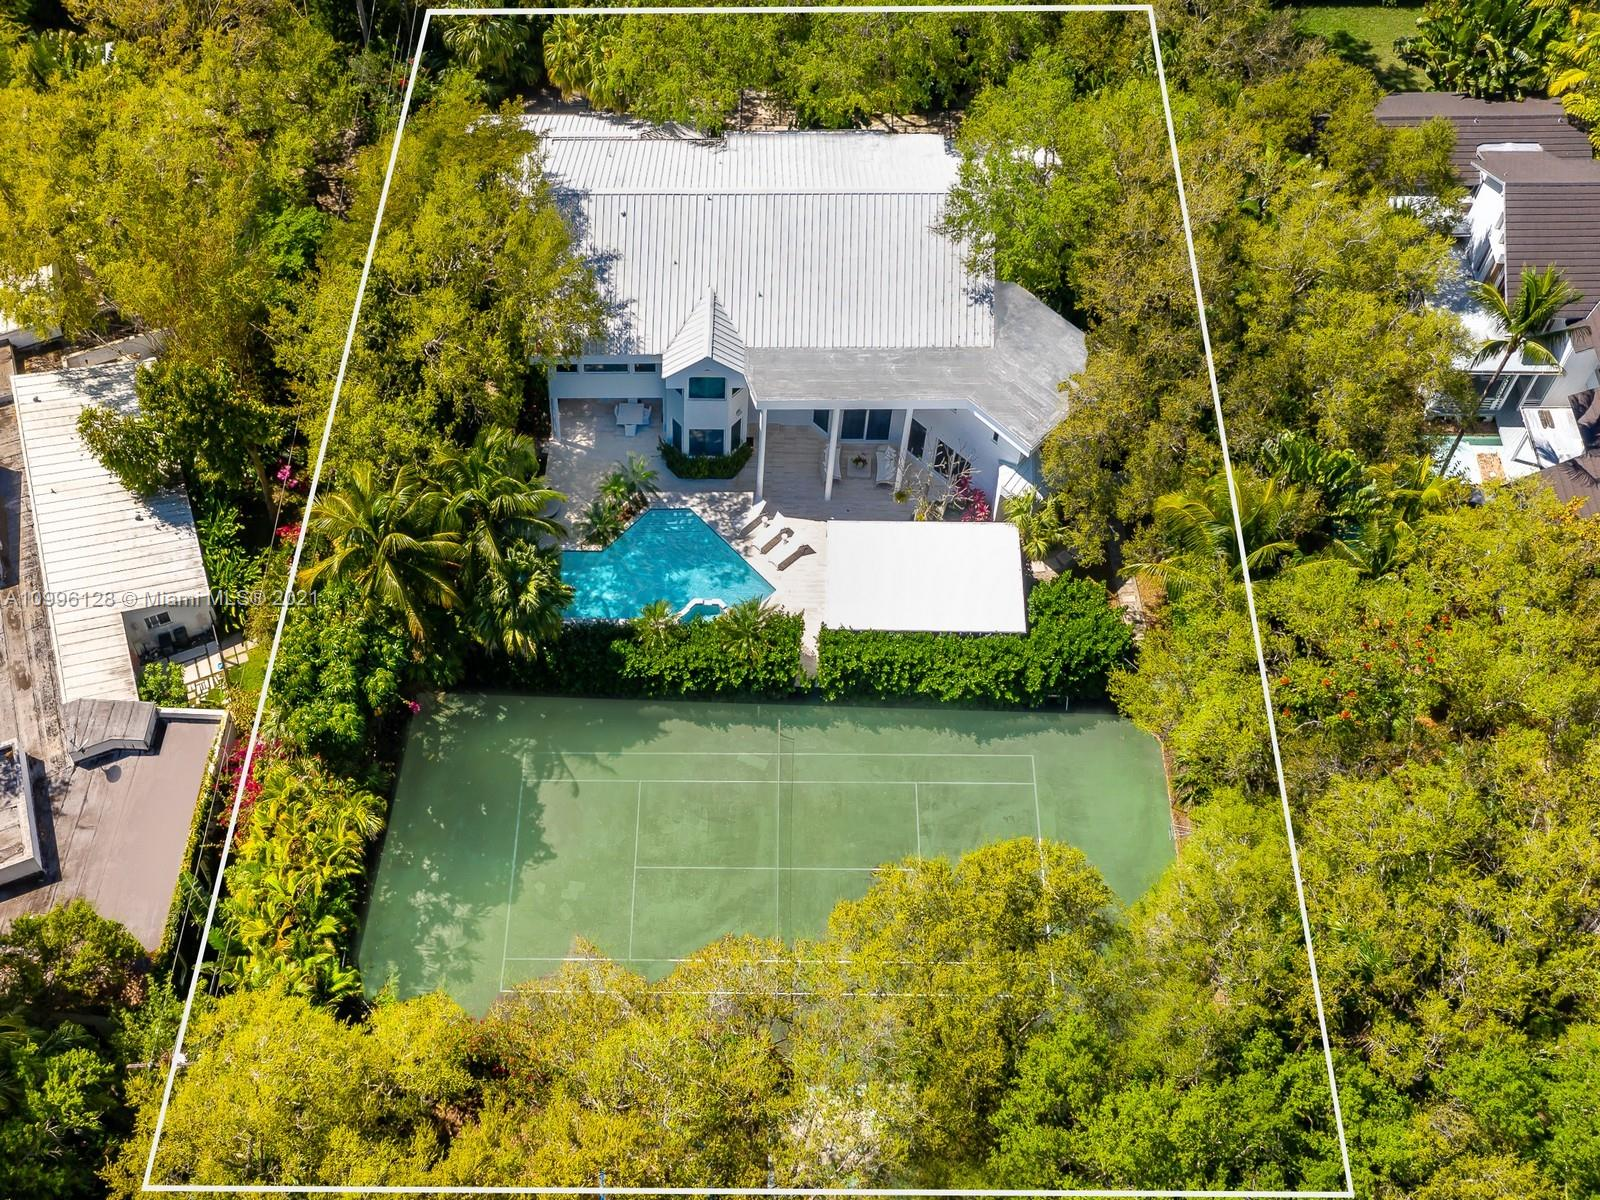 This MODERN Gem sits on nearly on a 38,161SF LOT nestled in a quiet enclave in CORAL GABLES.Take advantage of this unique opportunity to own a completely updated home featuring a tennis/basketball Ct,summer kitchen,pool+expansive garden made for entertaining.This beautiful home features 6 Bds,7 bths inside of its 8196  SF Total,w flr to ceiling windows which provide ample light throughout the house.On the 1st floor offers formal living+dinning room,completely updated kitchen w top of the line wolf appliances+built in Nespresso Machine,office,guest suite,family room.Upstairs offers master suite w oversized his+her closets,+3 adtl bedrooms.Equipped with tin roof,generator,2 car garage+2 carports,impact windows throughout,surround sound+security system,this gated home is a family's dream!